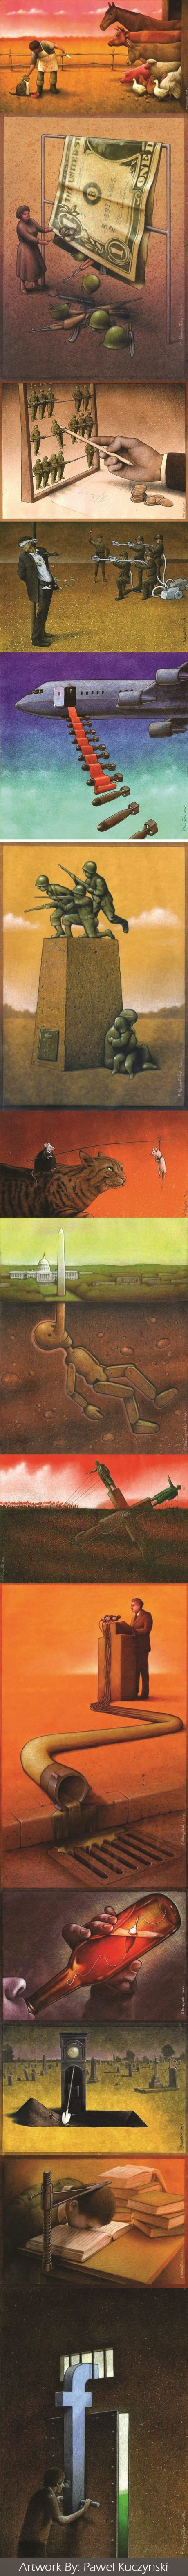 best ideas about satire satirical illustrations 14 brilliant and satirical drawings that question the world we live in by pawel kuczynski